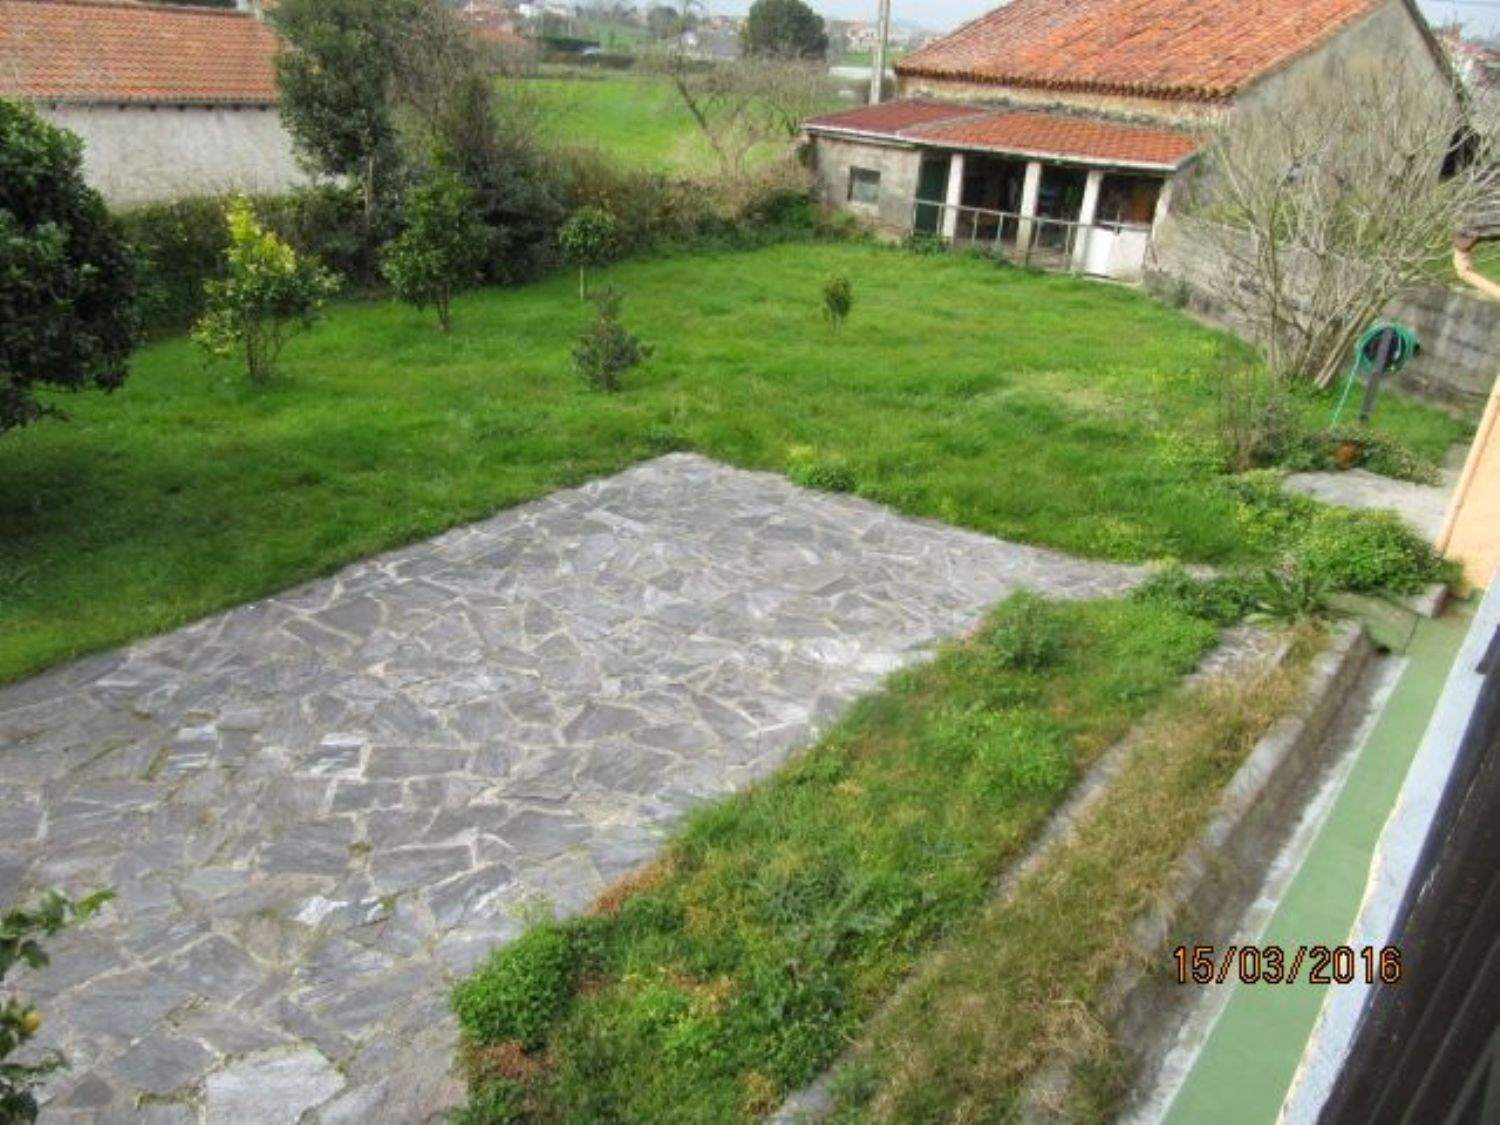 6 bedroom Finca/Country House for sale in Arnuero with garage - € 199,000 (Ref: 3668604)